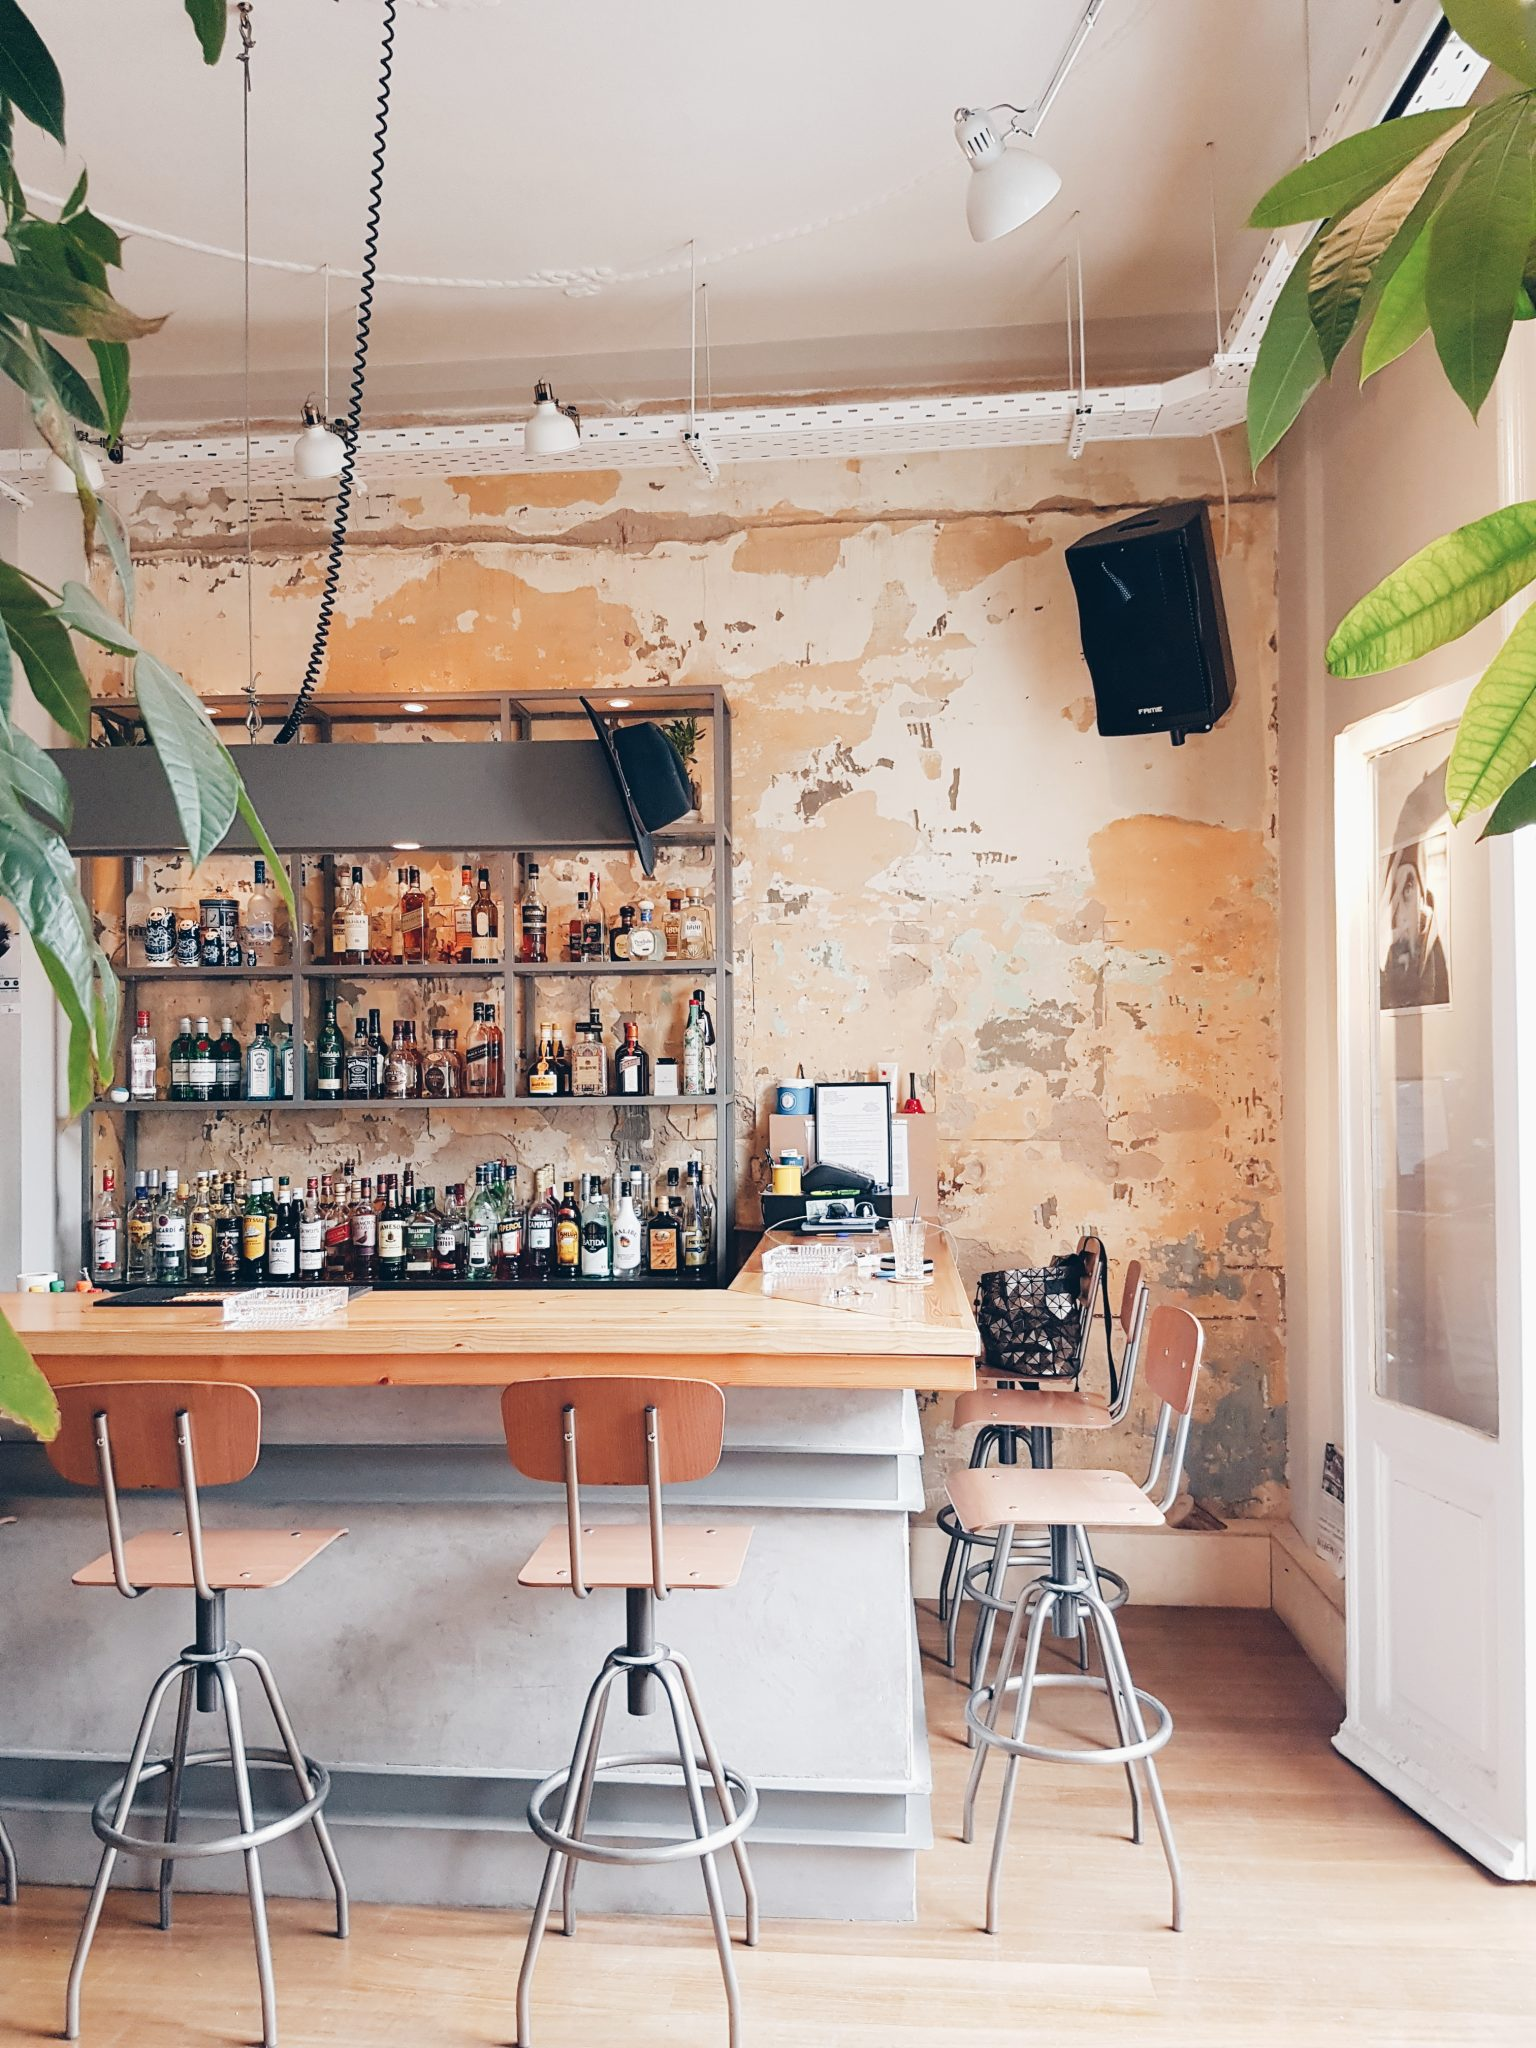 Mob cafe is located in downtown Thessaloniki, Greece. It is a cozy yet minimalistic spot for coffee and drinks.